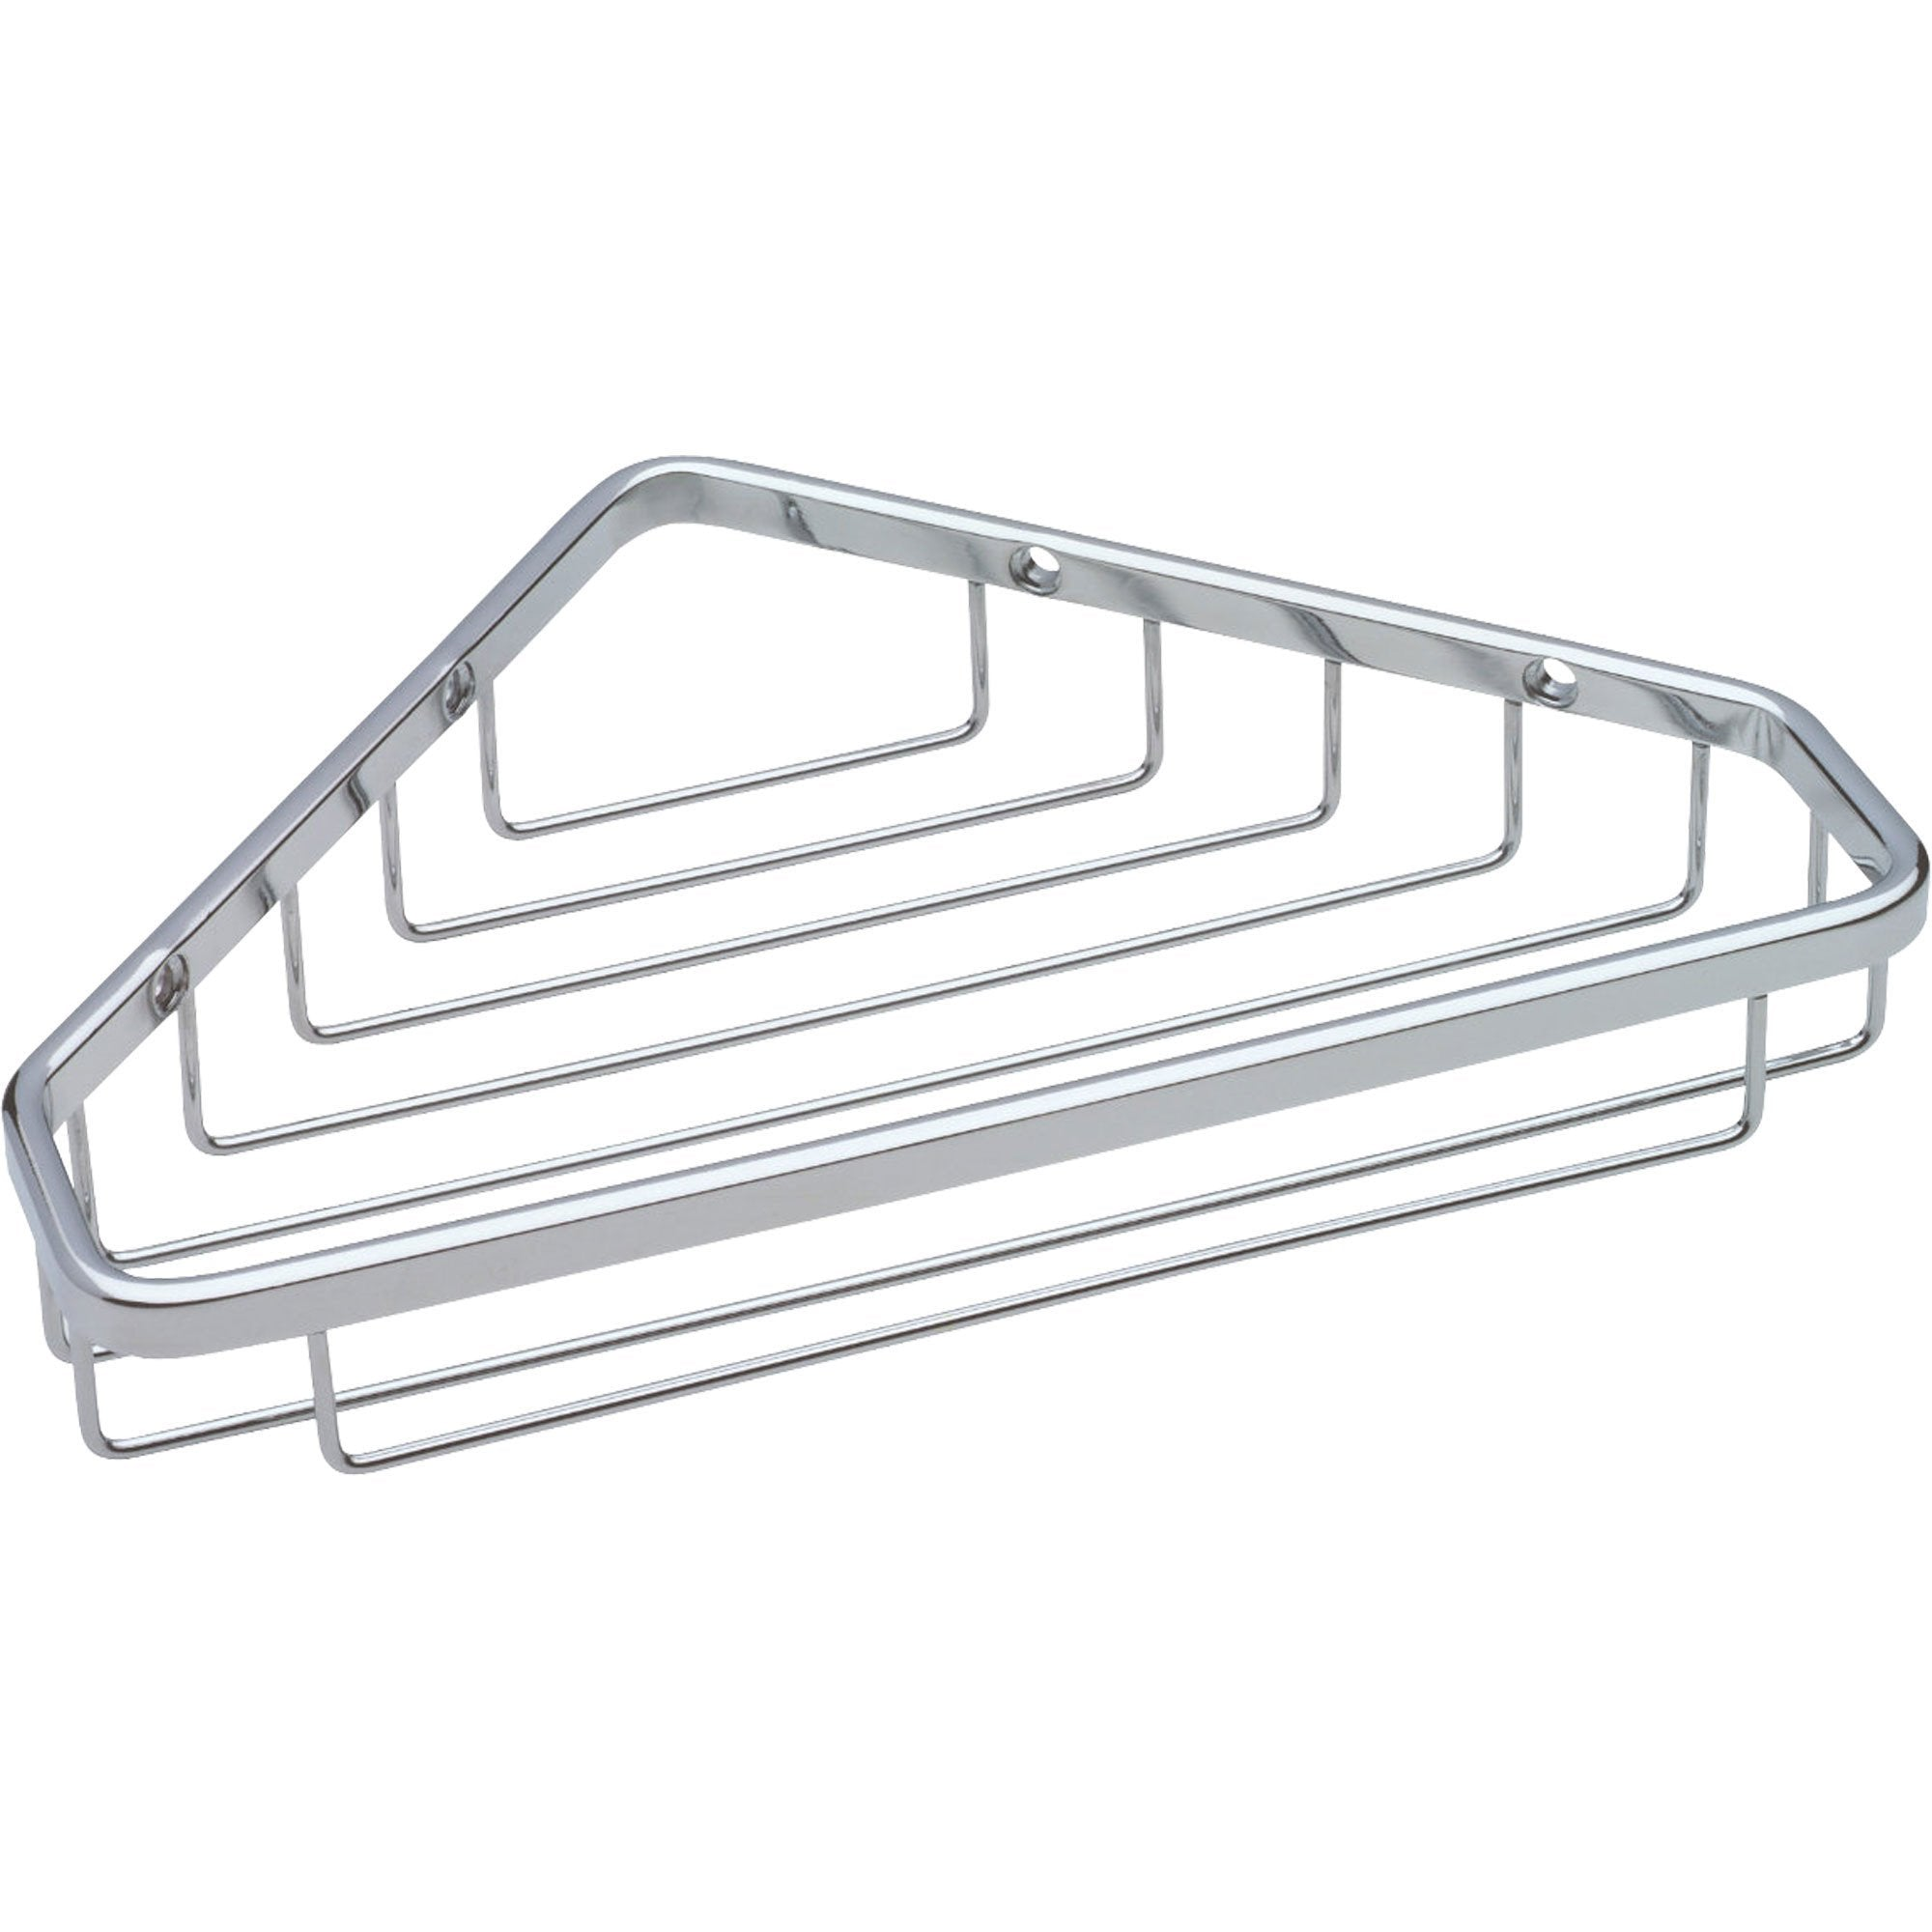 Delta Bright Stainless Steel Finish Large Corner Shower Wire Rack Caddy 567272